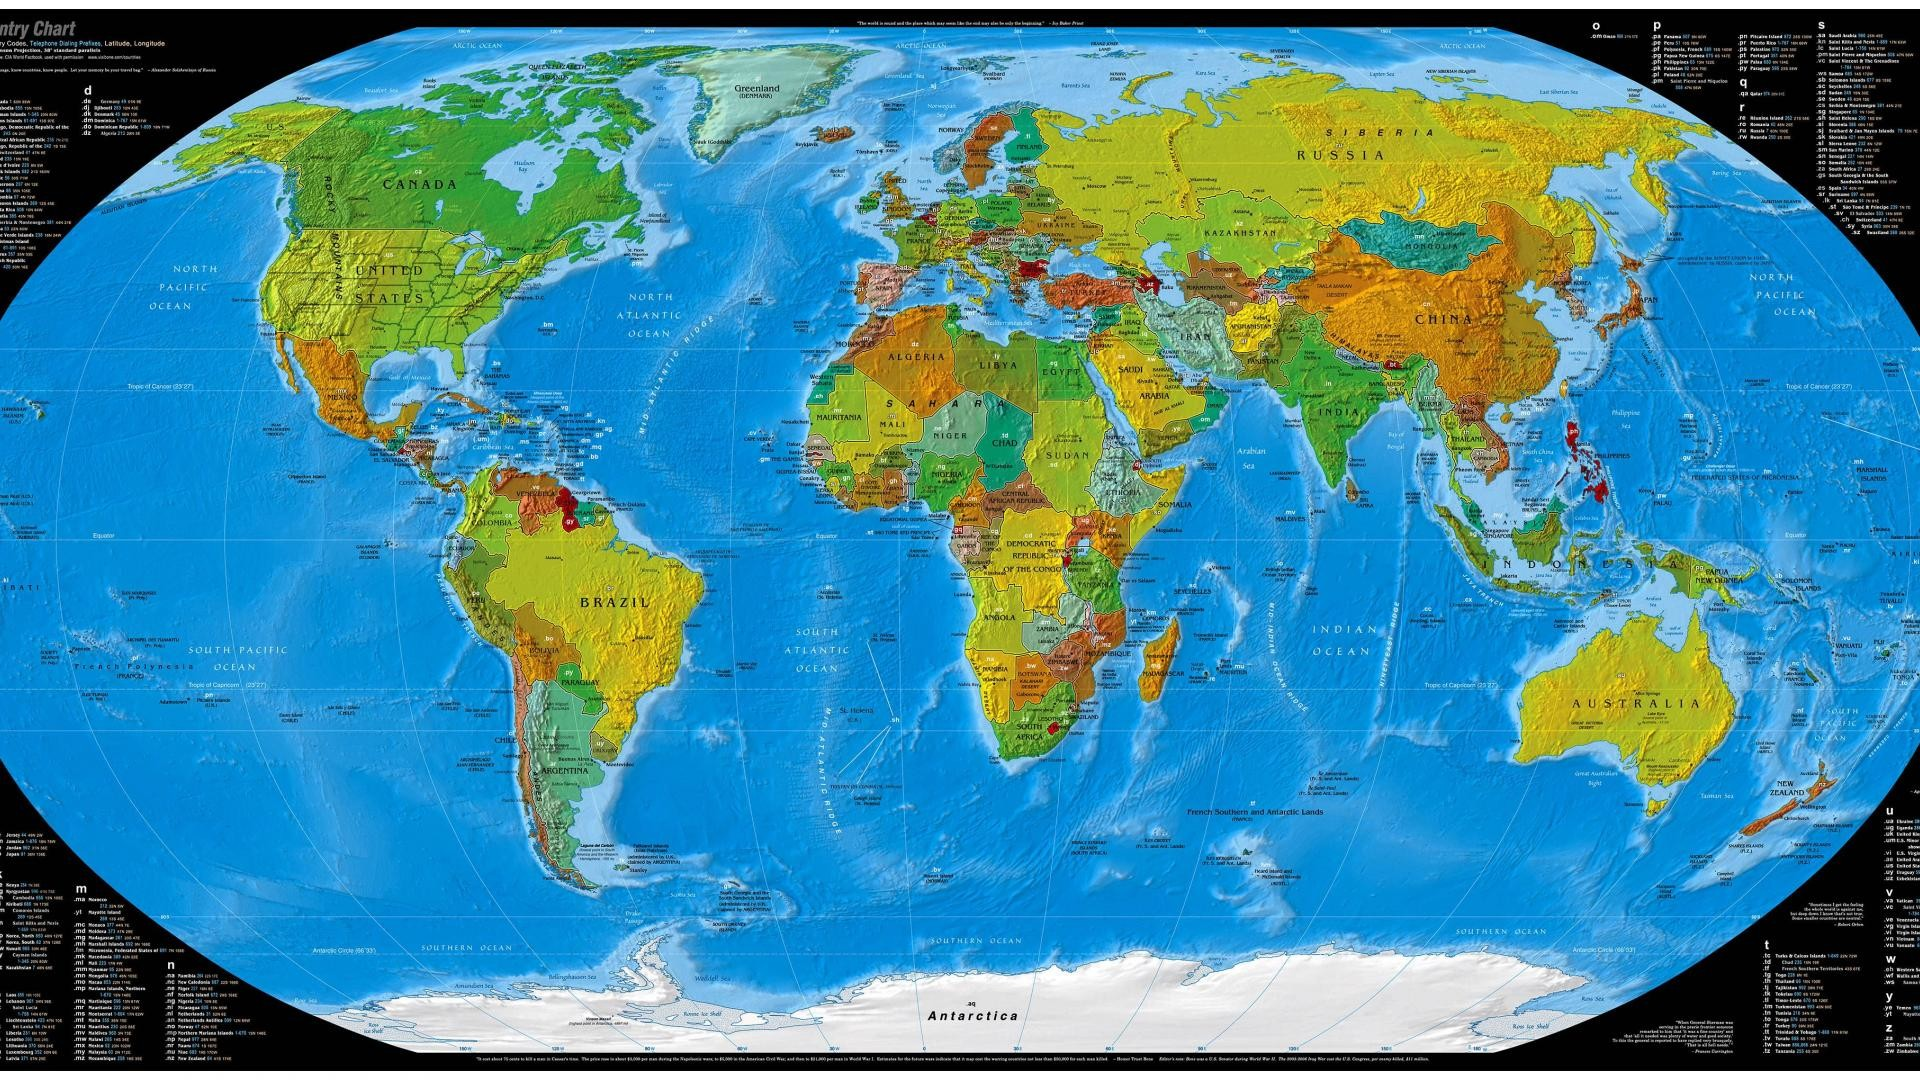 World map wallpapers high resolution 66 background pictures 2560x1600 world map in high definition fresh hd world map wallpaper 17 fresh world map wallpaper high resolution new download world map gumiabroncs Choice Image